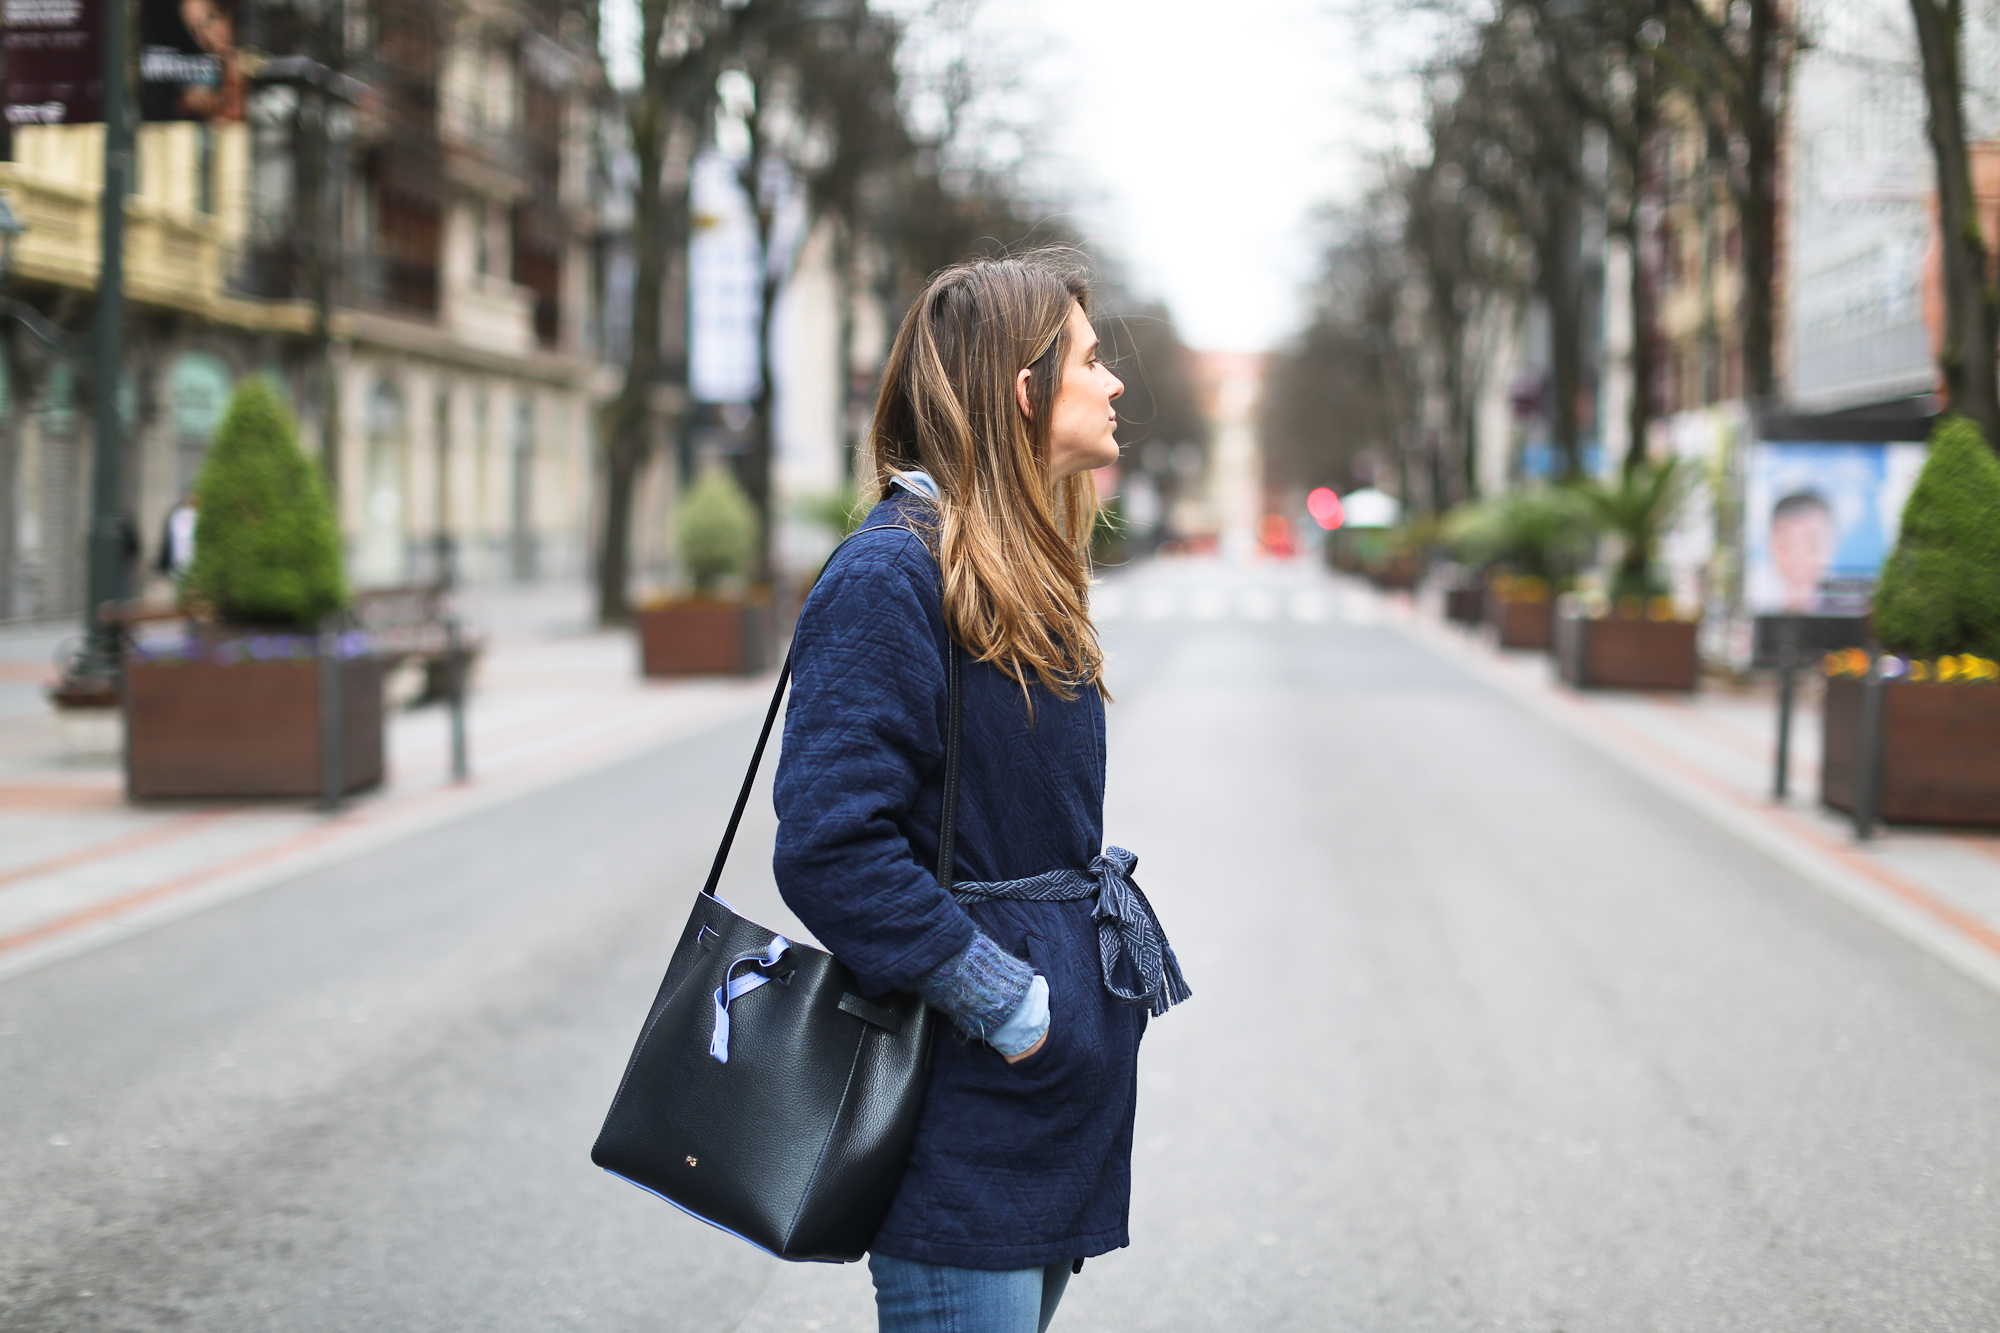 Clochet_streetstyle_pepejeans_skinny_jeans_purificaciongarcia_bucket_bag-6